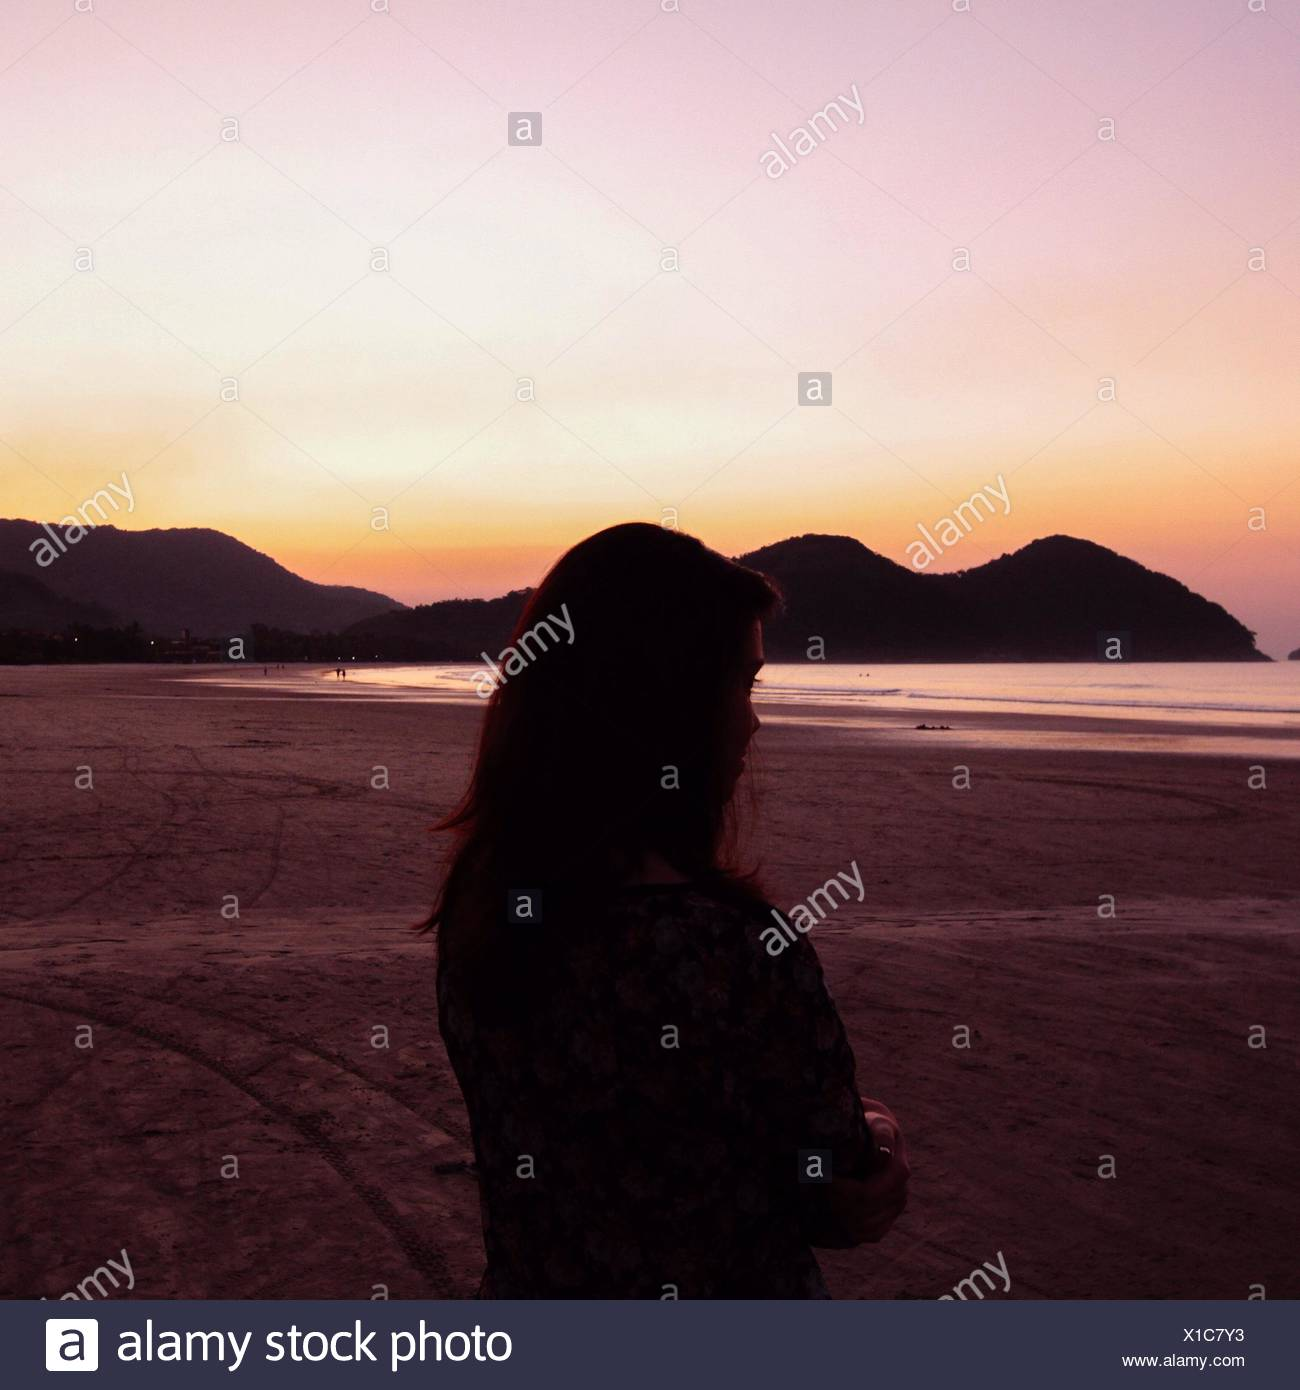 Silhouette of Woman On Beach Photo Stock